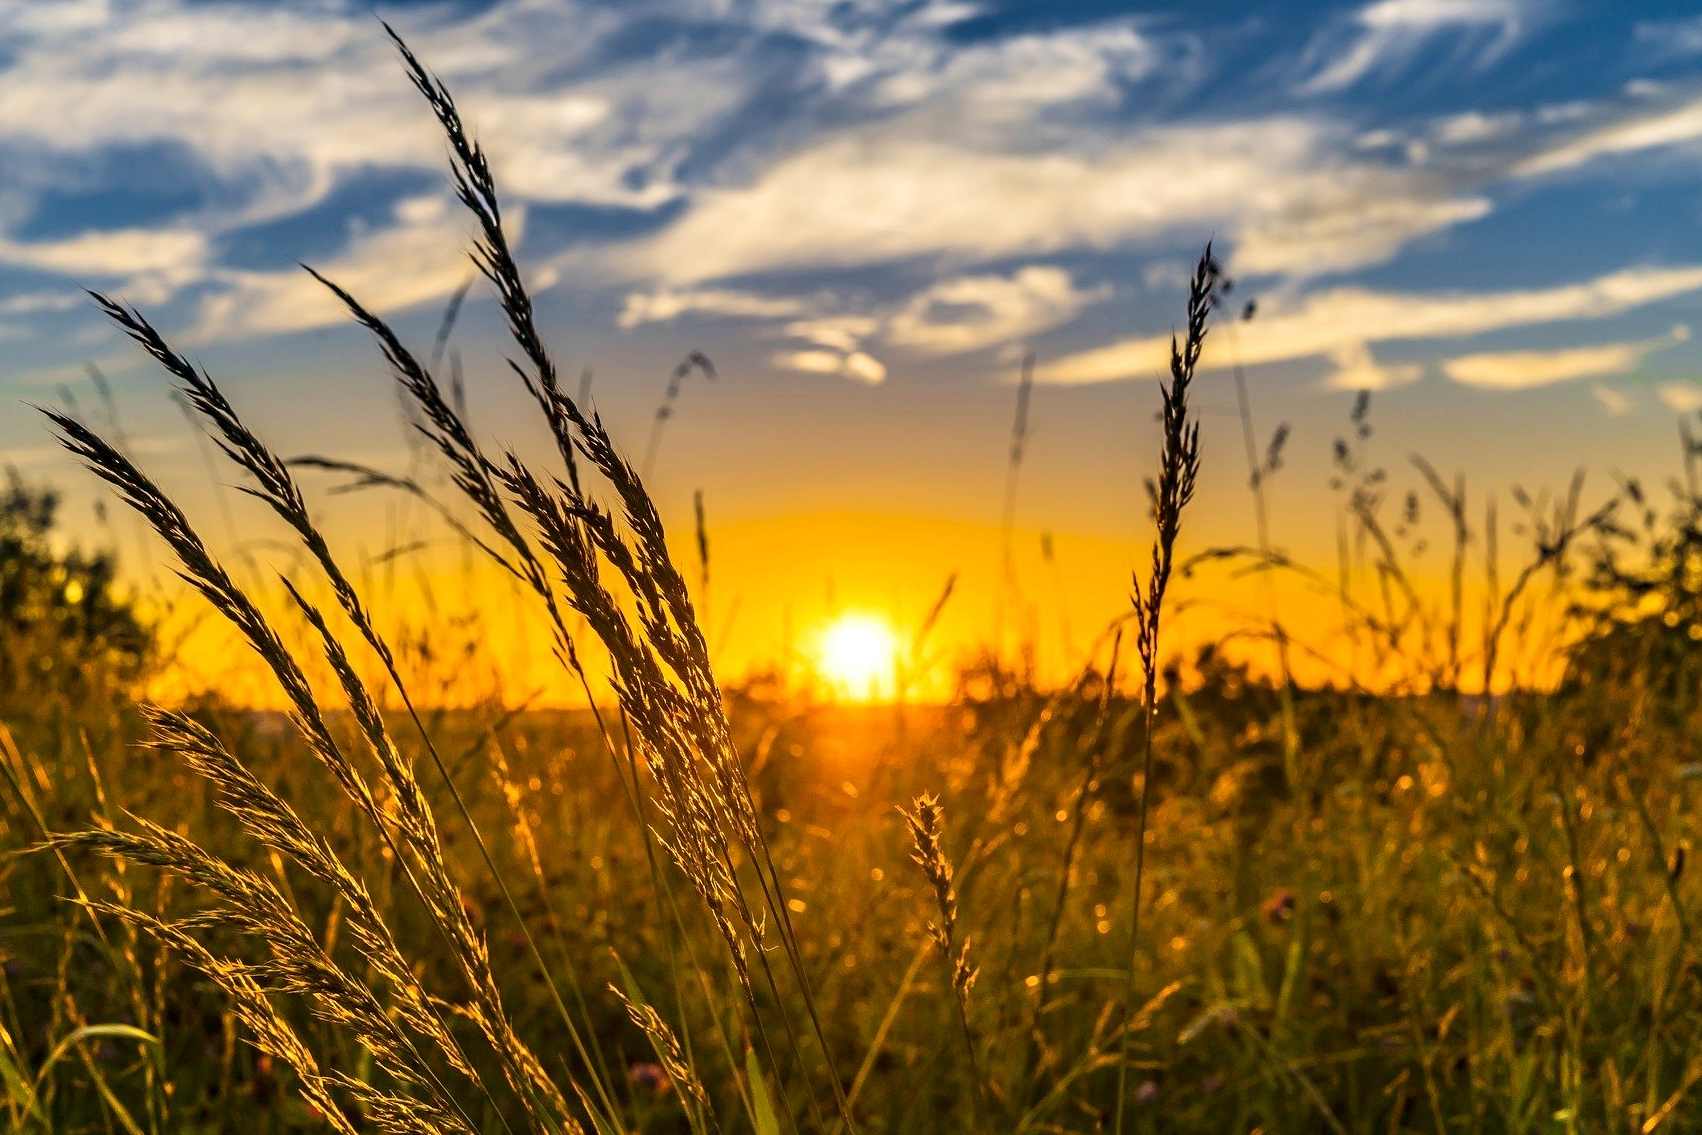 Summer Solstice 2021: Celebrate the First Day of Summer | The Old Farmer's  Almanac